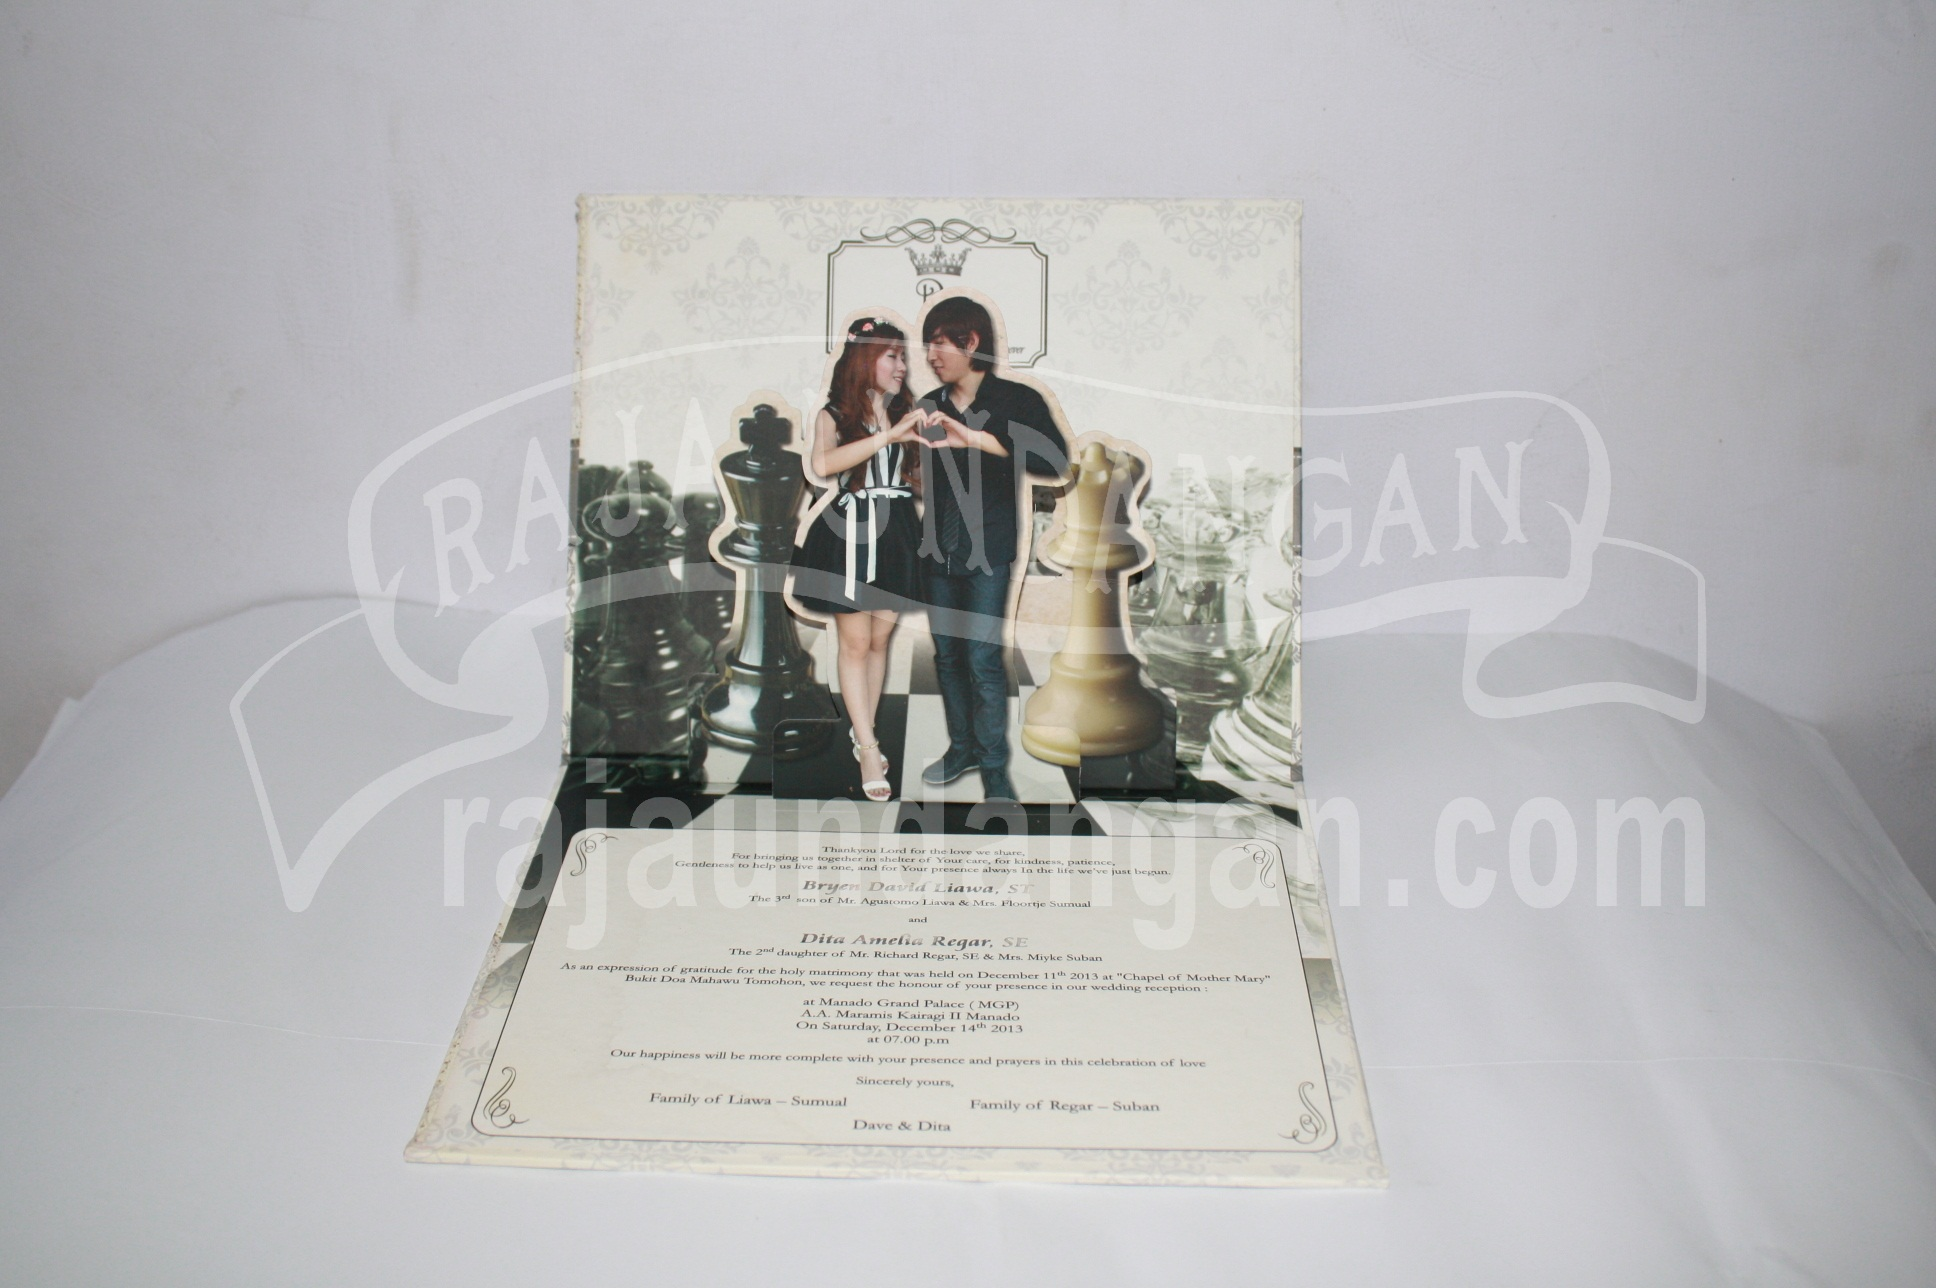 Undangan Pernikahan Hardcover Pop Up Dave dan Dita EDC 39 1 - Pesan Wedding Invitations Murah di Warugunung